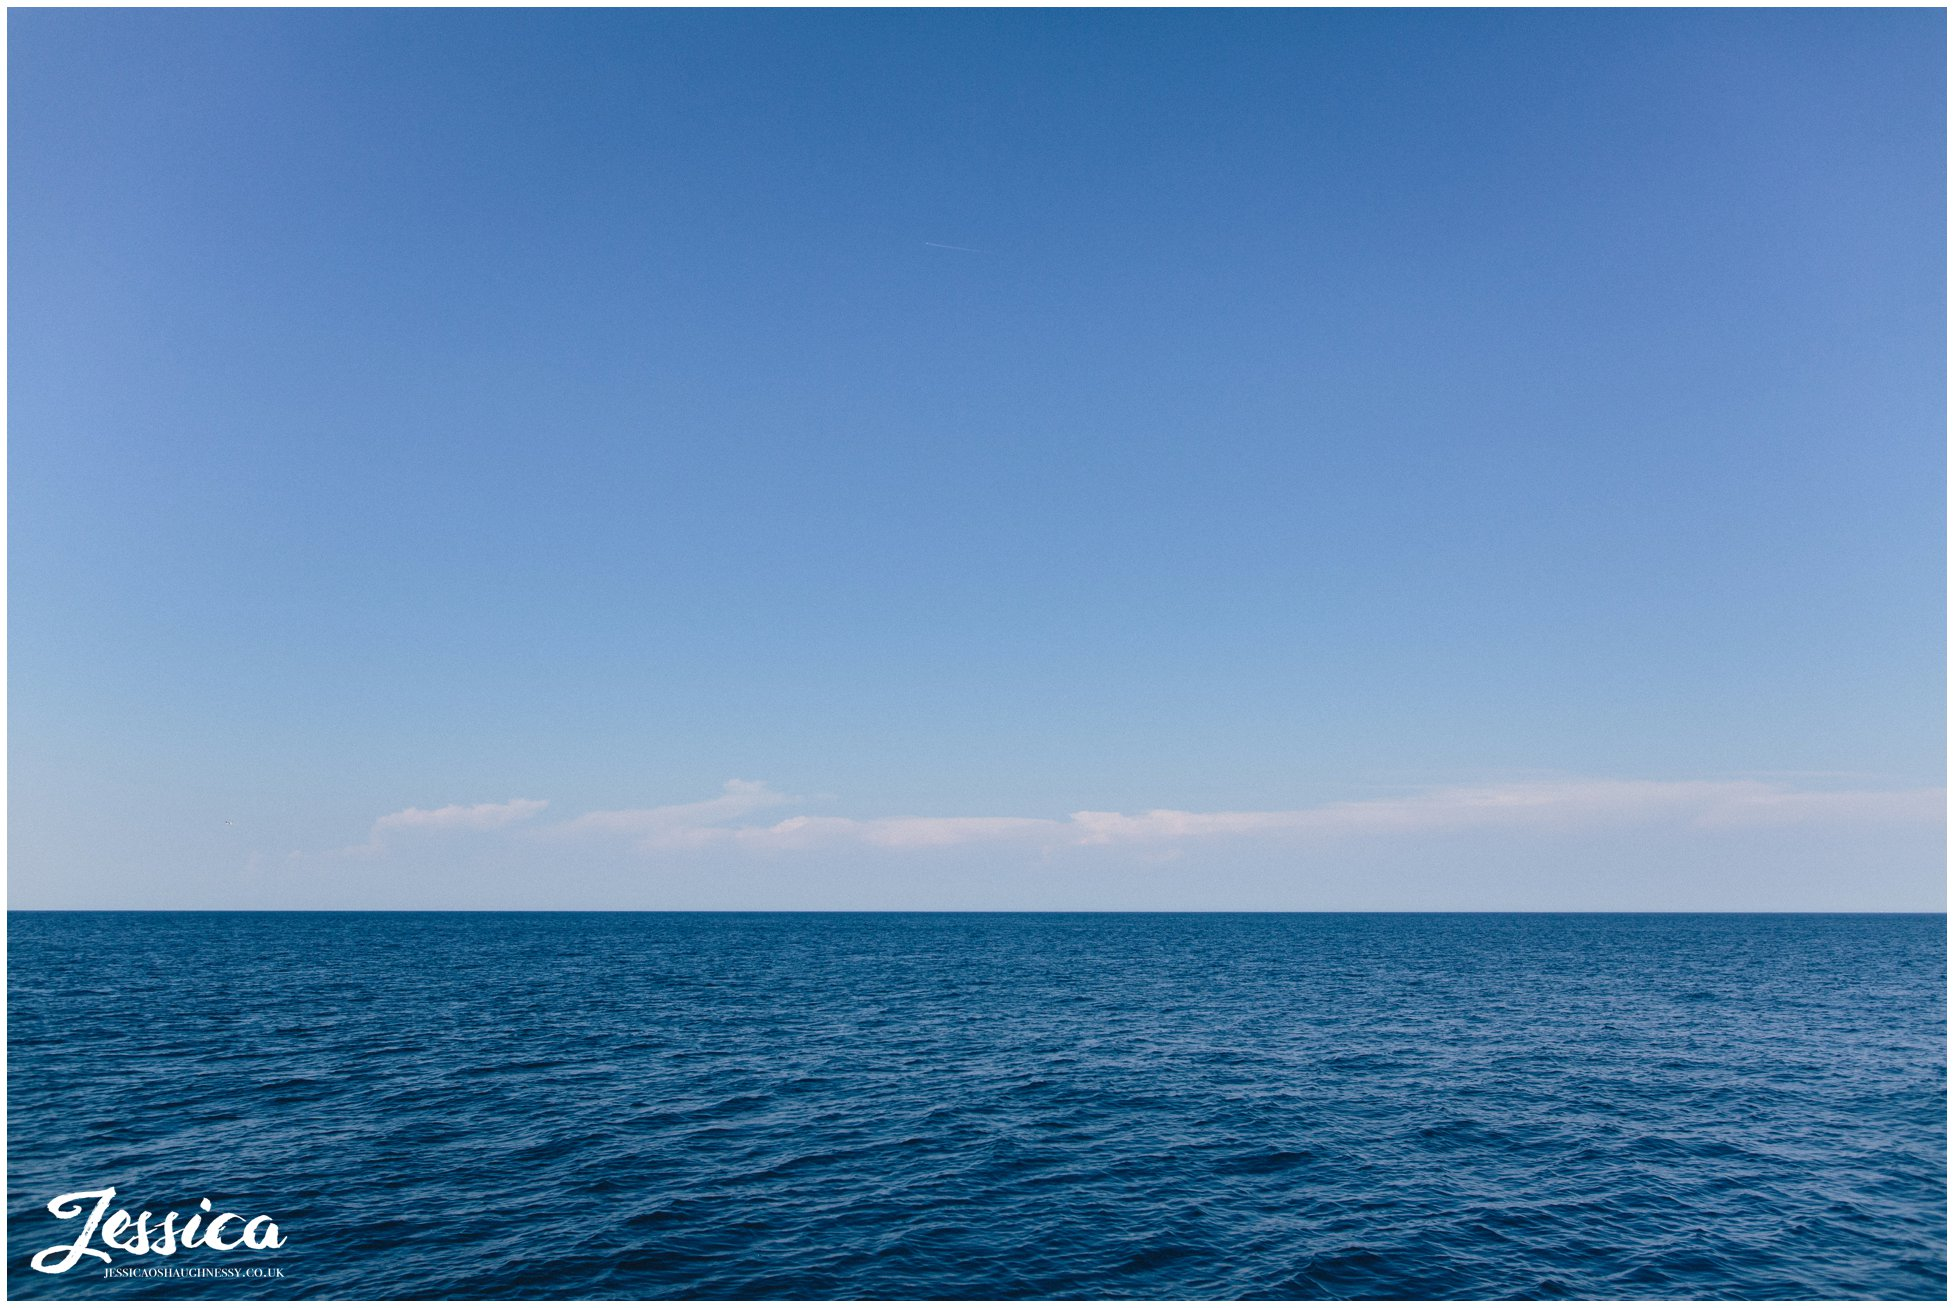 a photograph of the blue sky & sea